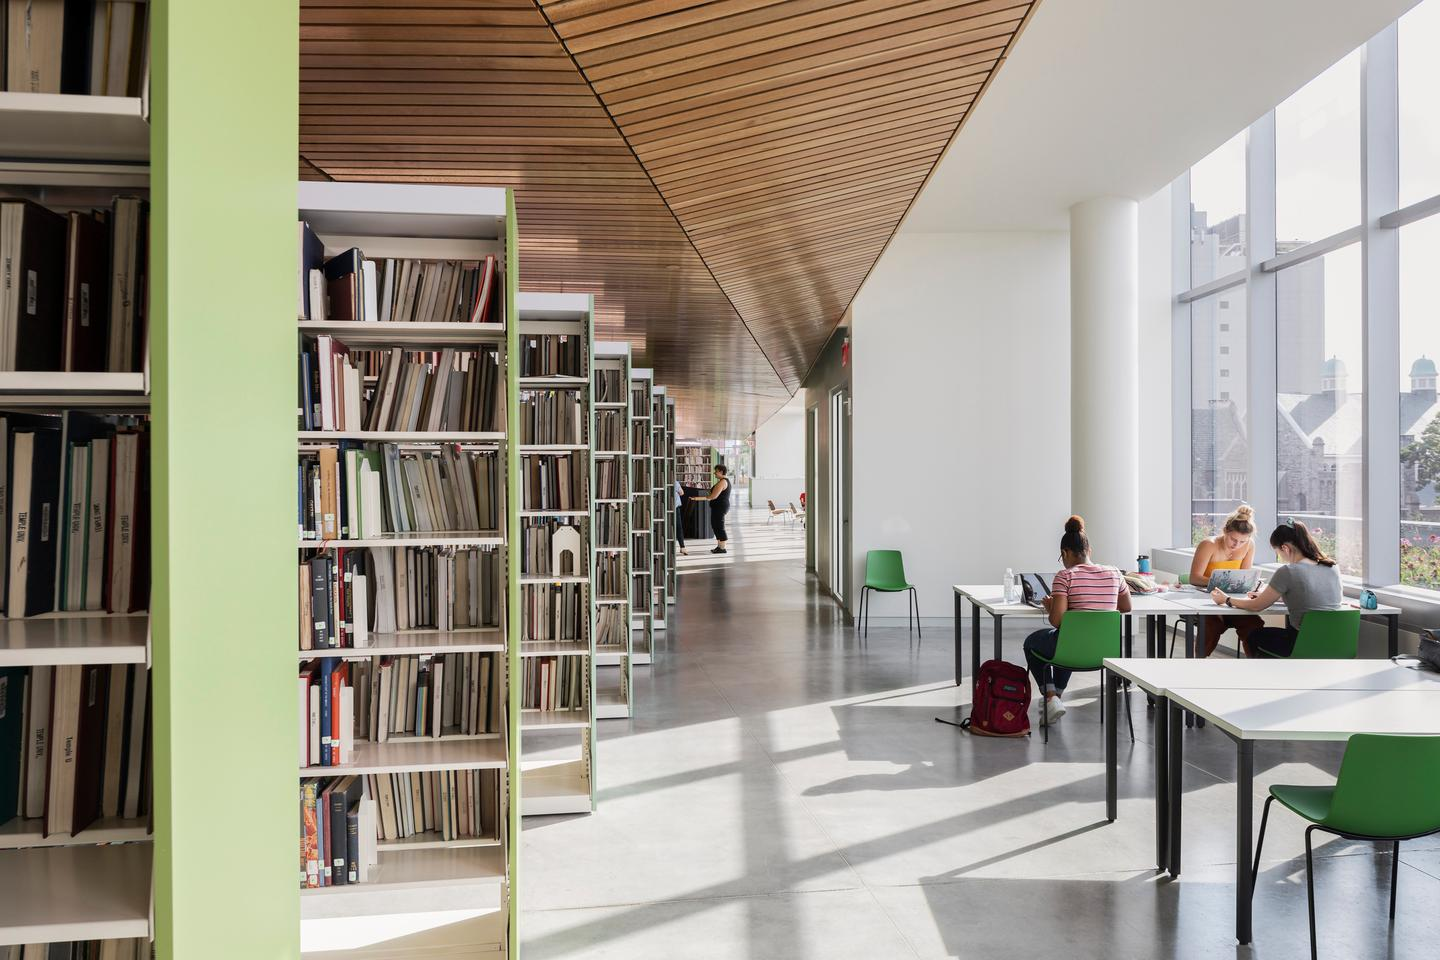 The Charles Library at Temple University includes multiple meeting and study areas